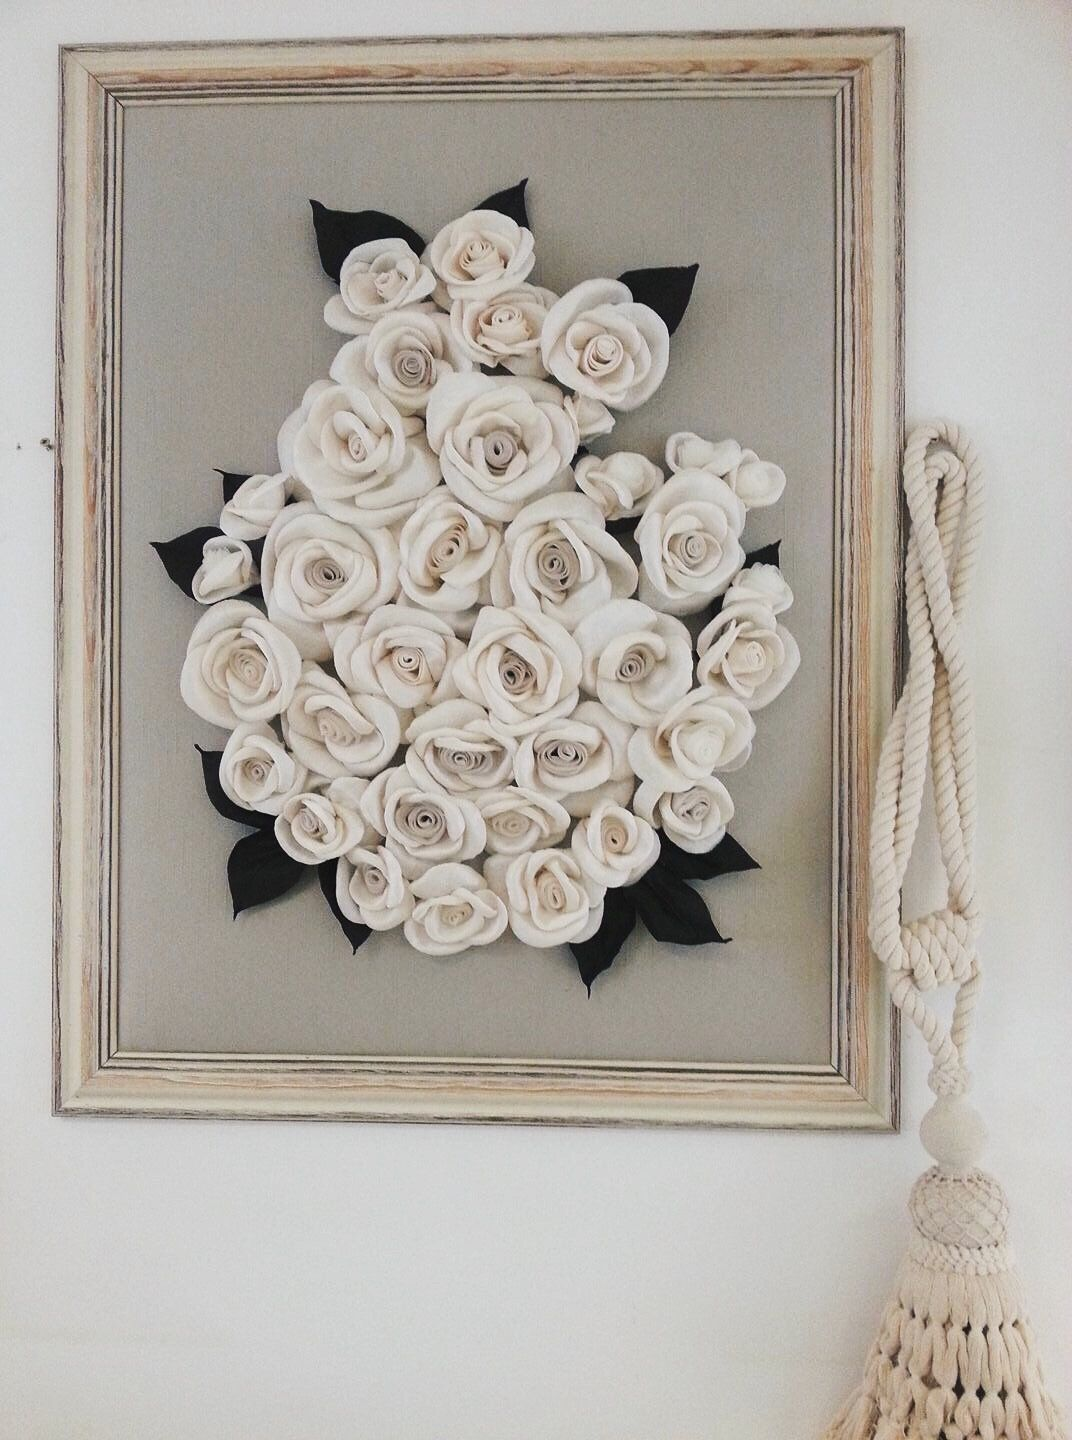 3d Wall Hanging Masive Frame Textile Flowers Wall Decorations Wall Art Flowers Arrangement Deco 3d Flowers Wall Art Wall Hangings Flower Wall Art Flower Wall Decor Wall Decor